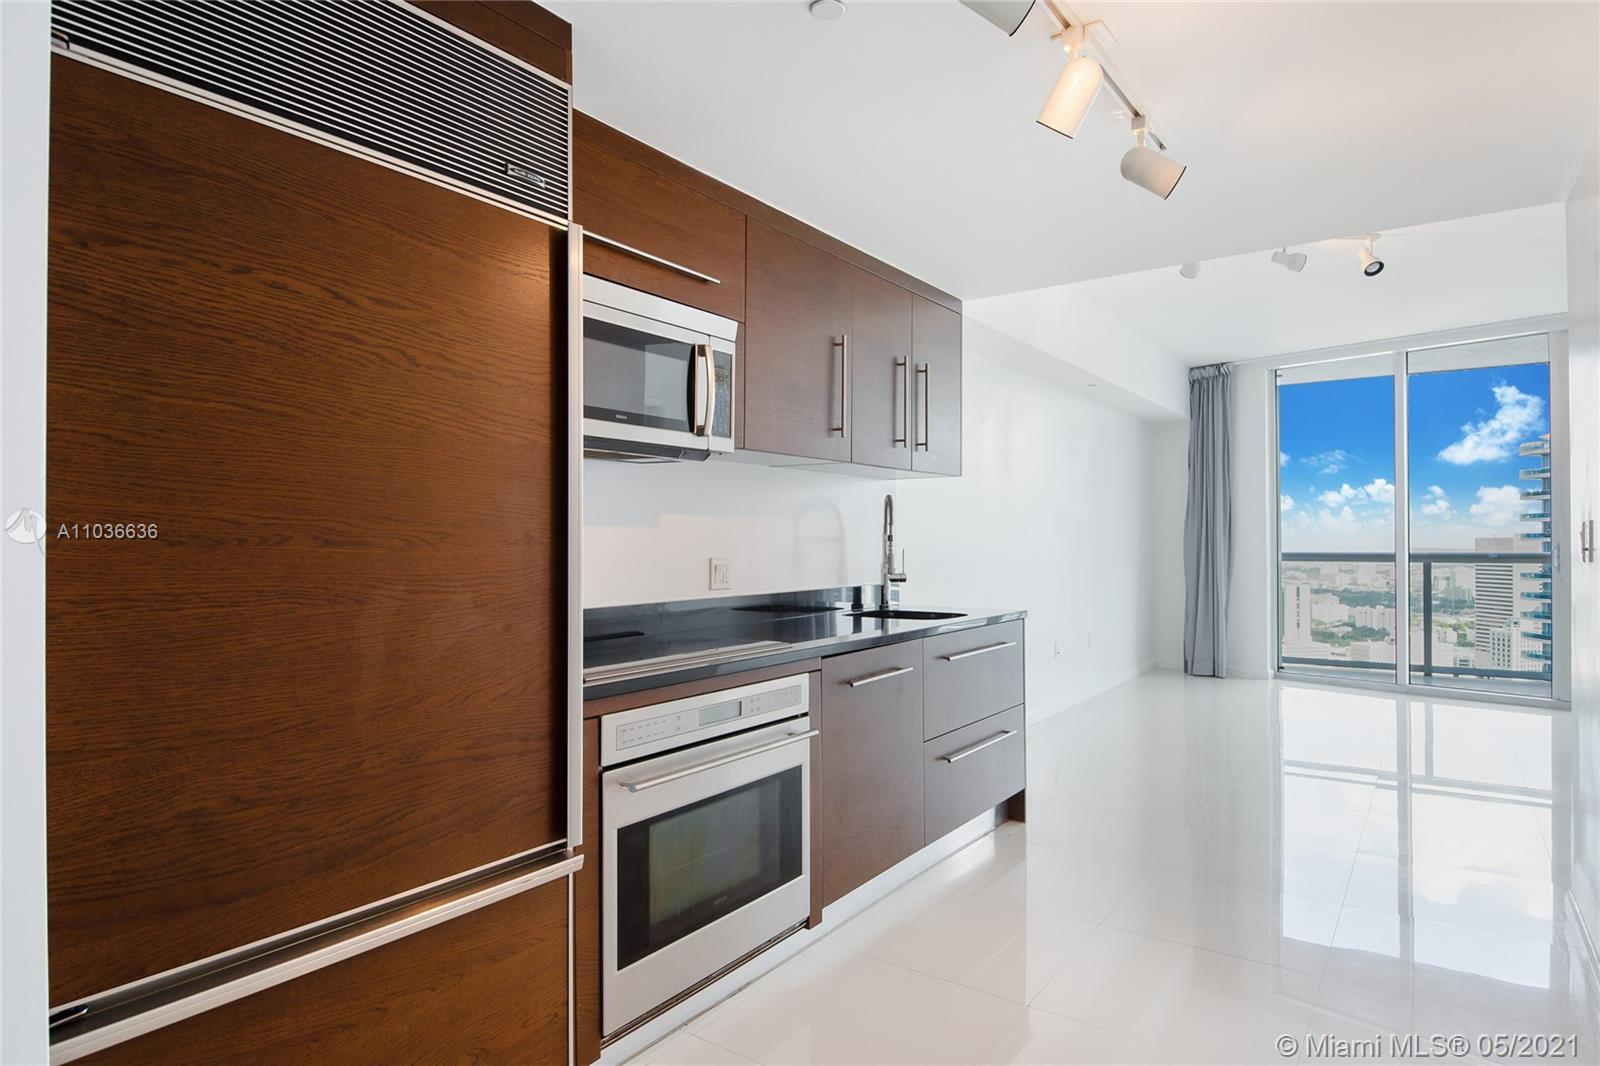 49th Floor Unit in Tower 1 of Icon Brickell. Unit features spectacular 49th floor river and city vie